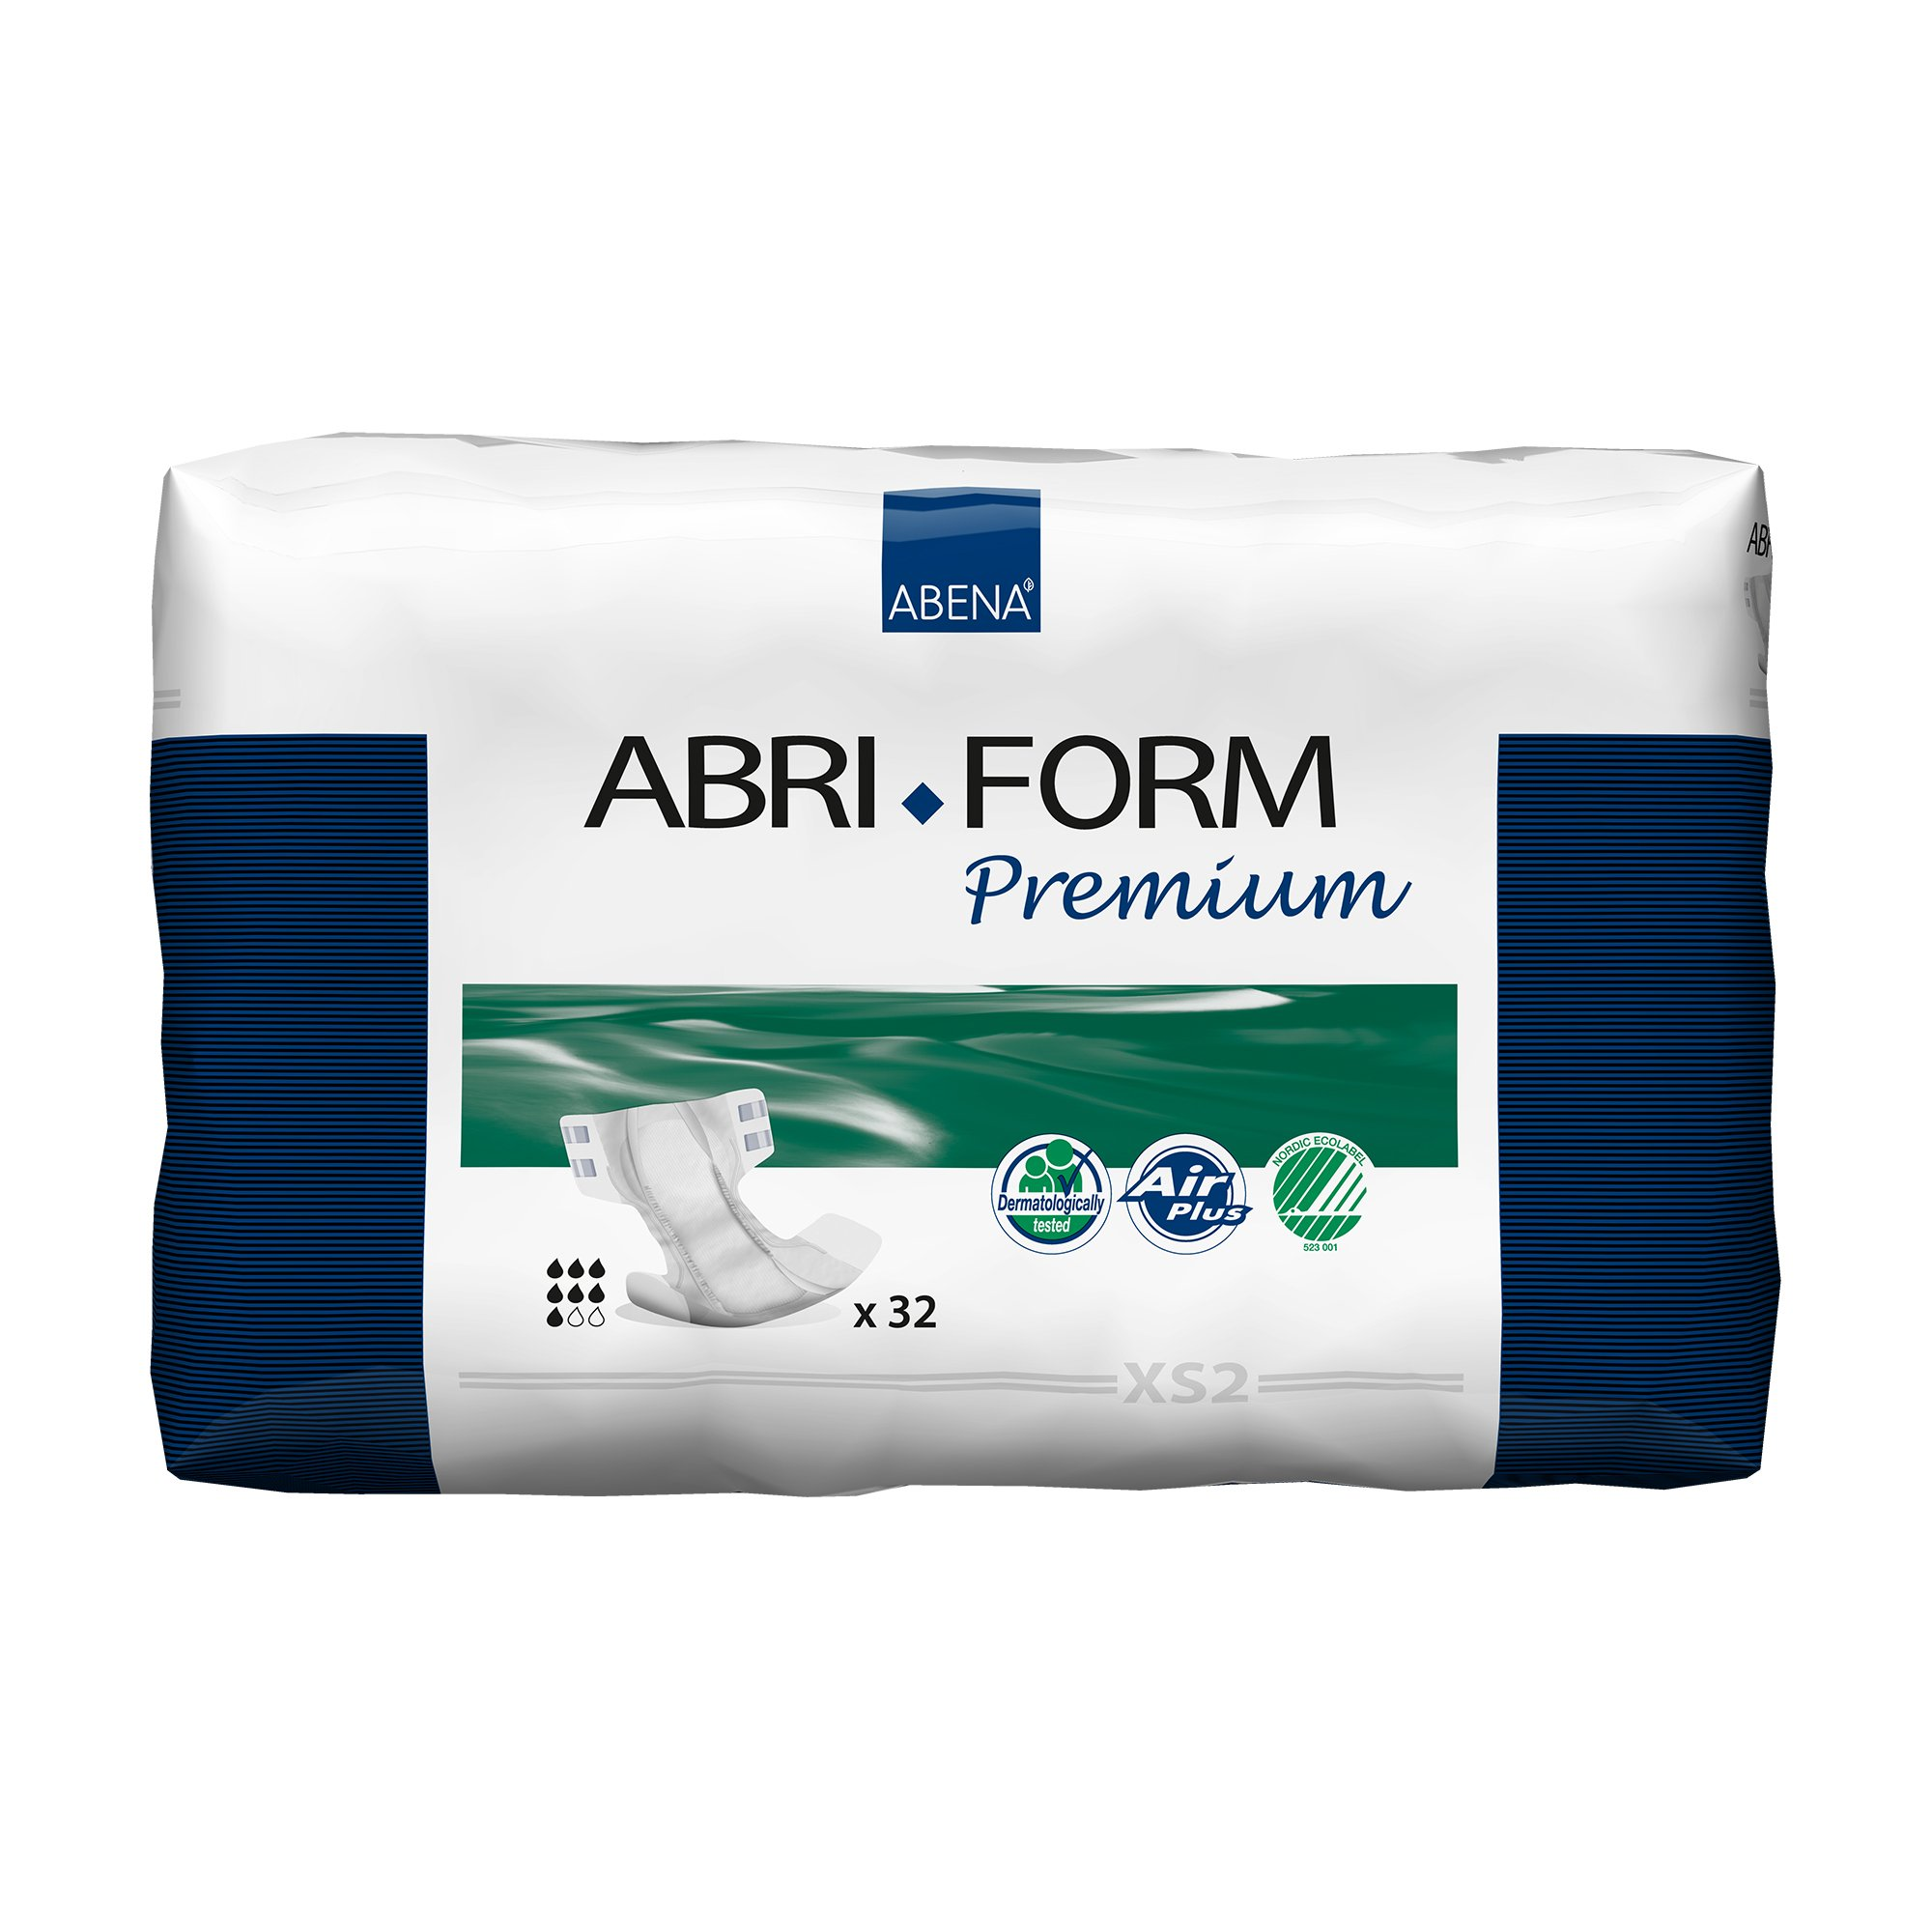 """Abri-Form Premium XS2 Unisex Adult Disposable Diaper with tabs, Heavy Absorbency, 43054, X-Small (20-24"""") - Bag of 32"""